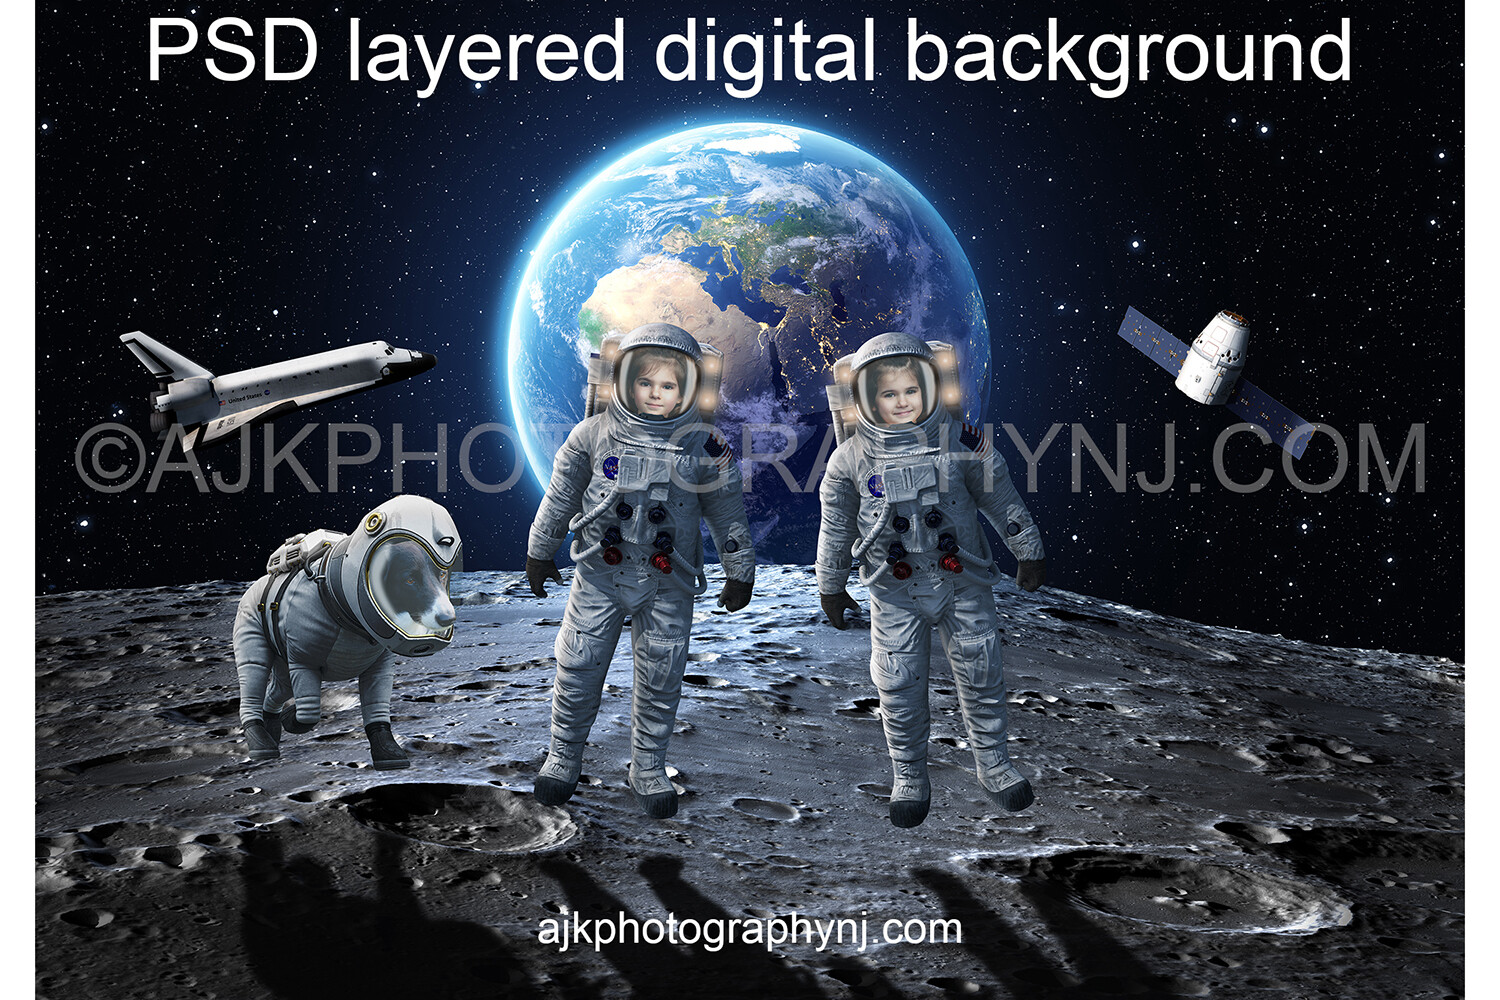 Astronaut digital background, two astronauts and a dog in outer space on the moon, with the Earth, space shuttle and satellite behind them